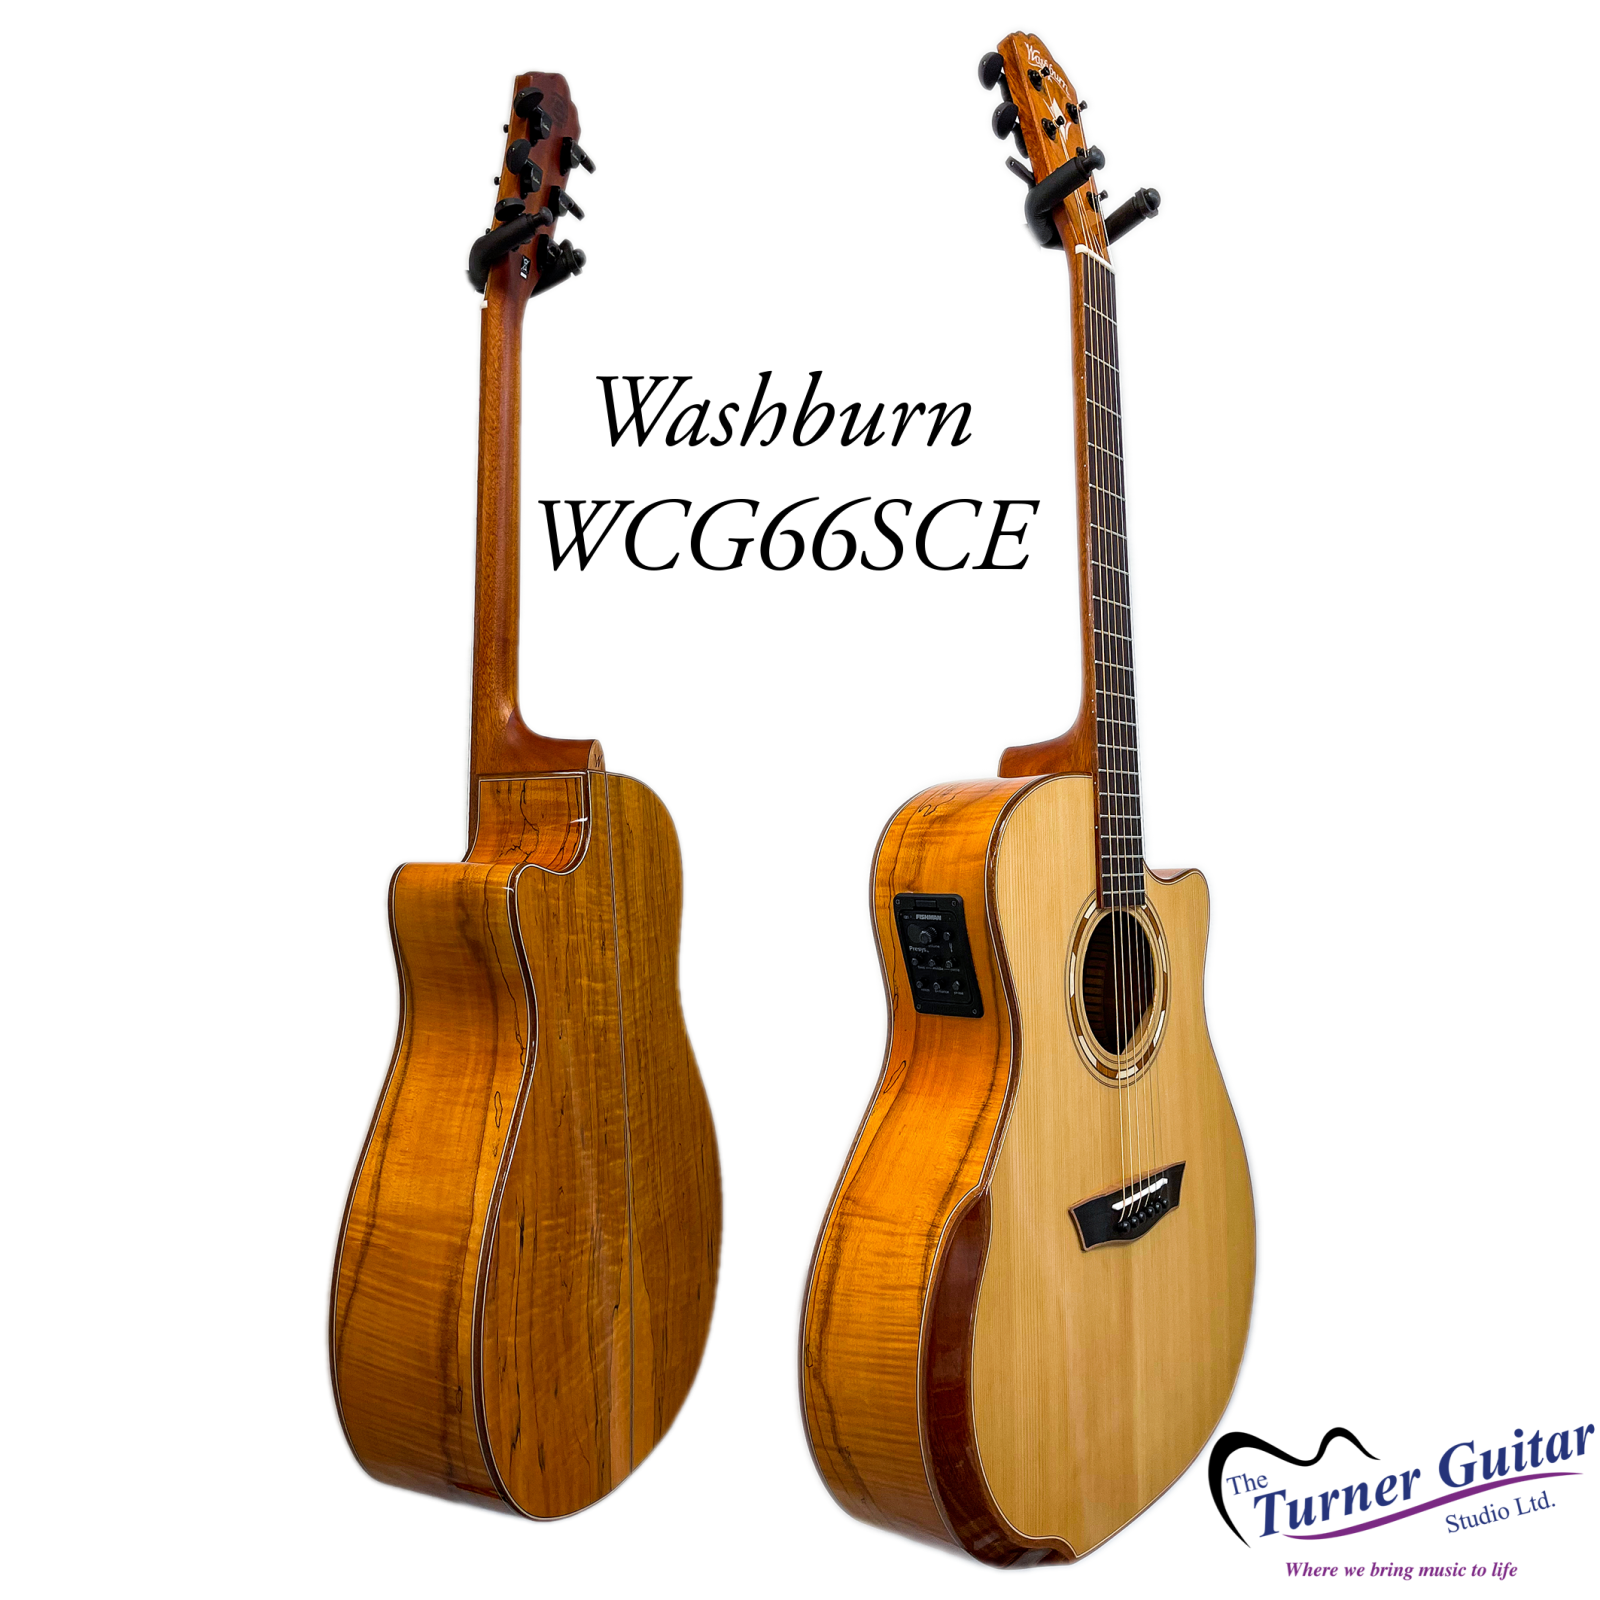 Washburn Comfort Deluxe Acoustic/electric - Cedar & Spalted Maple - Fishman Presys+